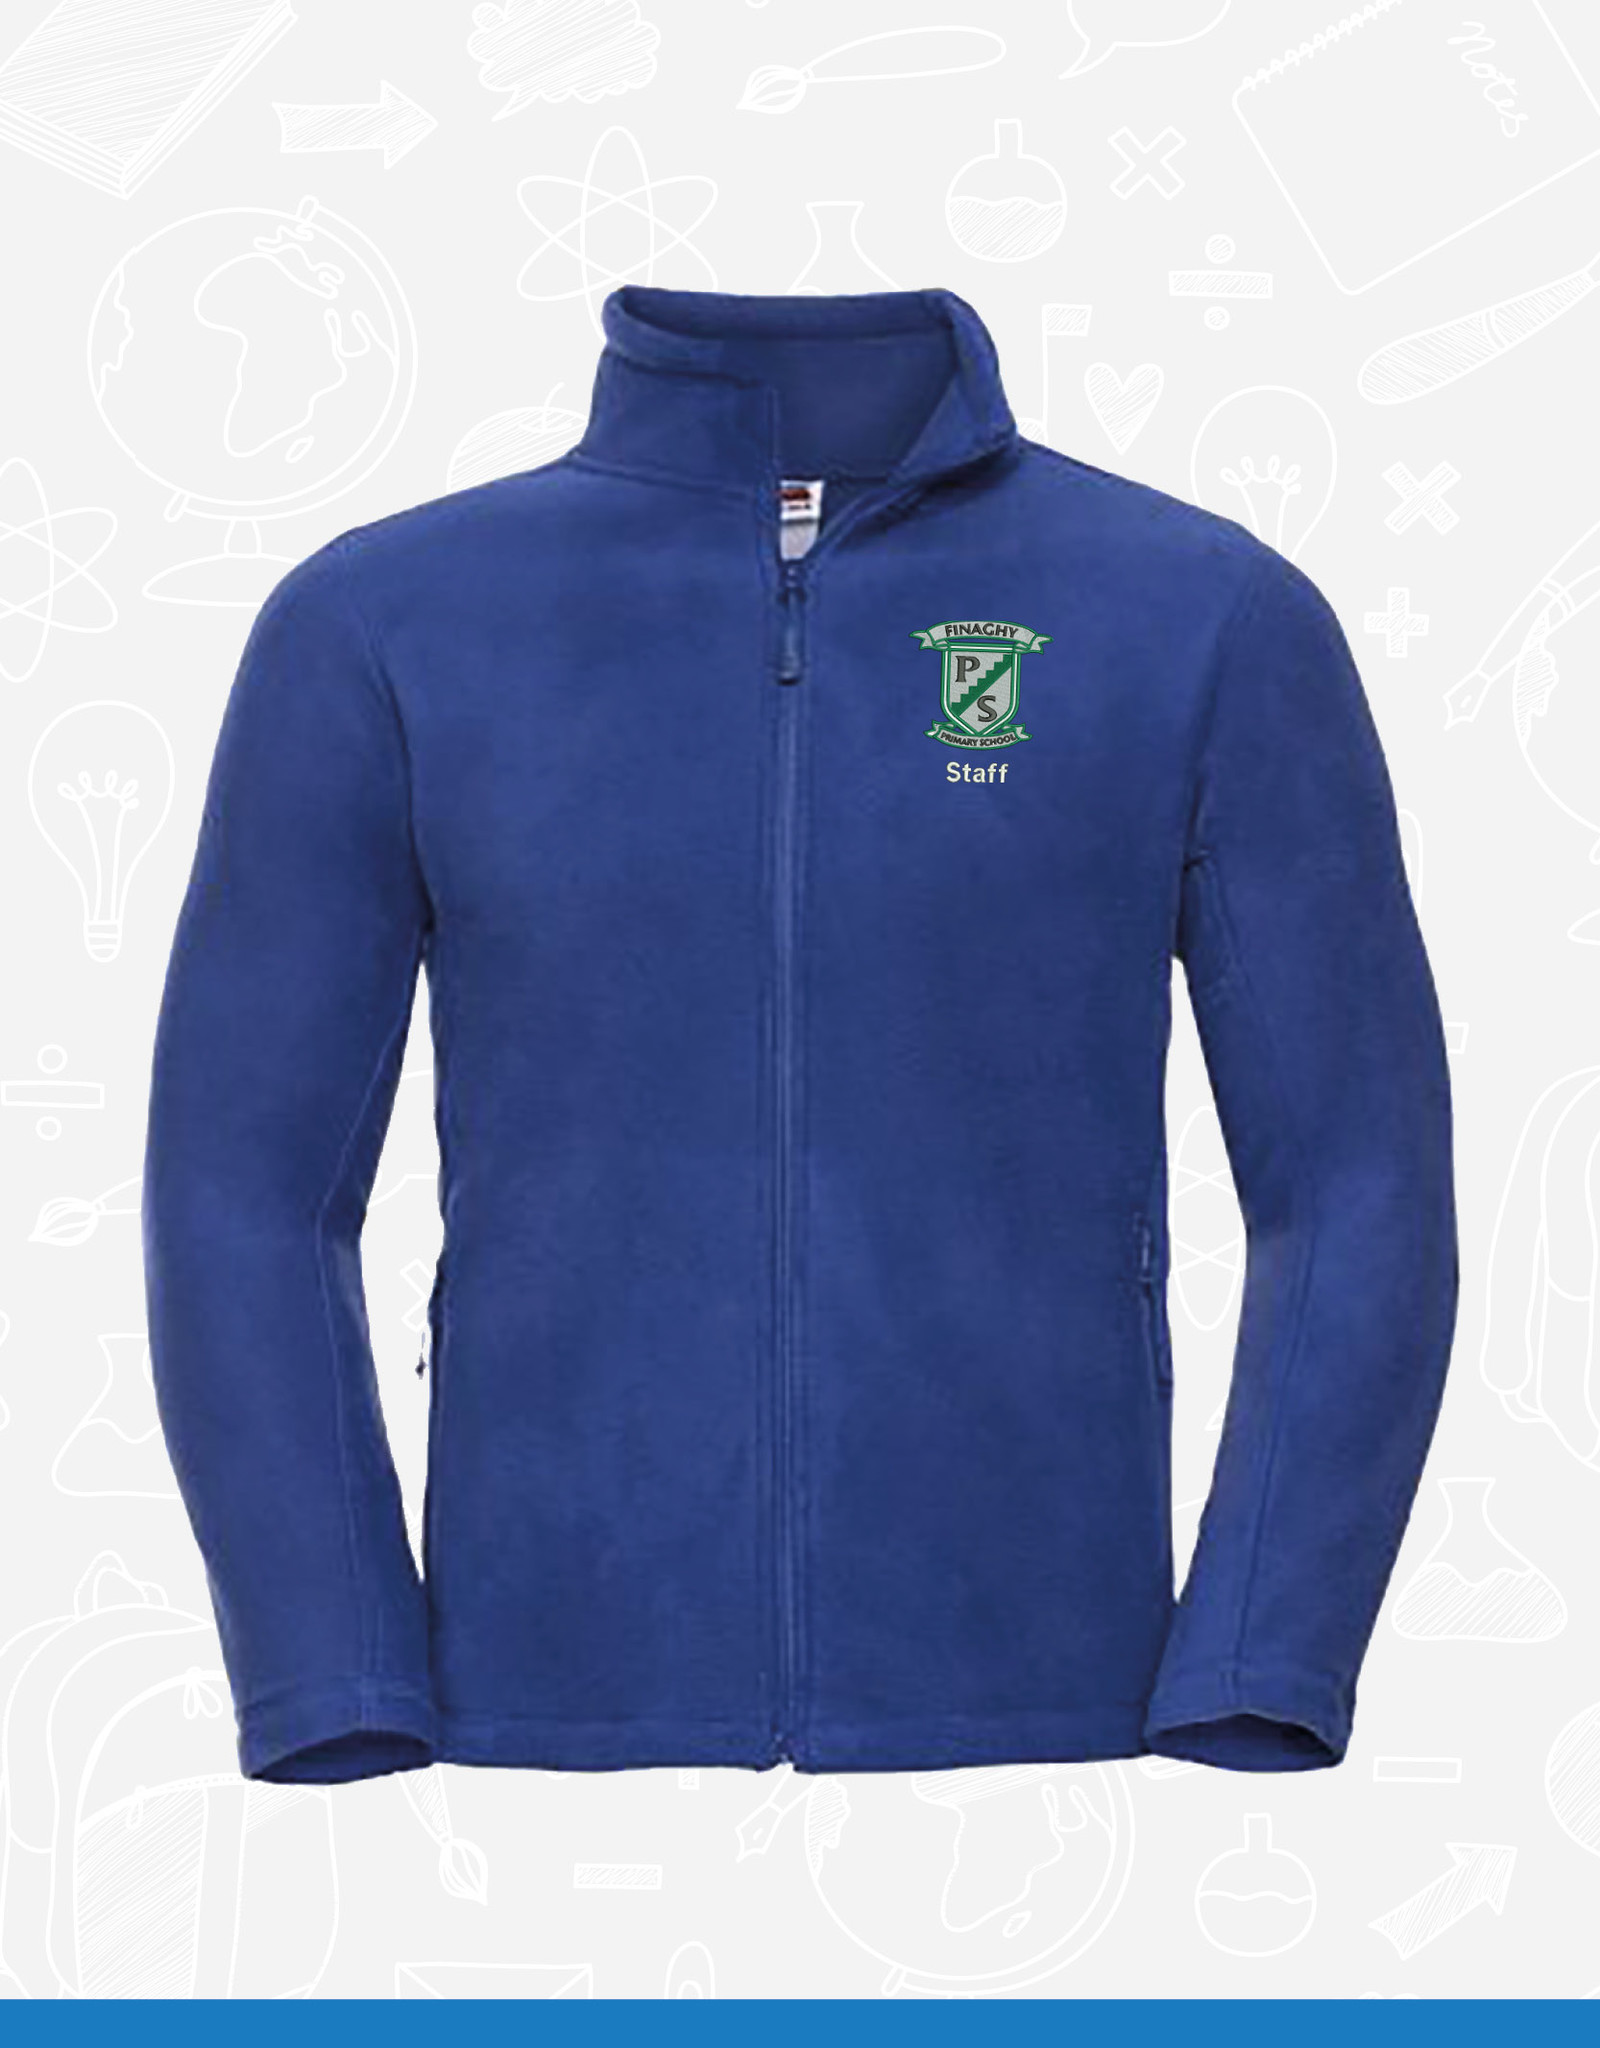 Russell Finaghy Primary Staff Fleece (870M)